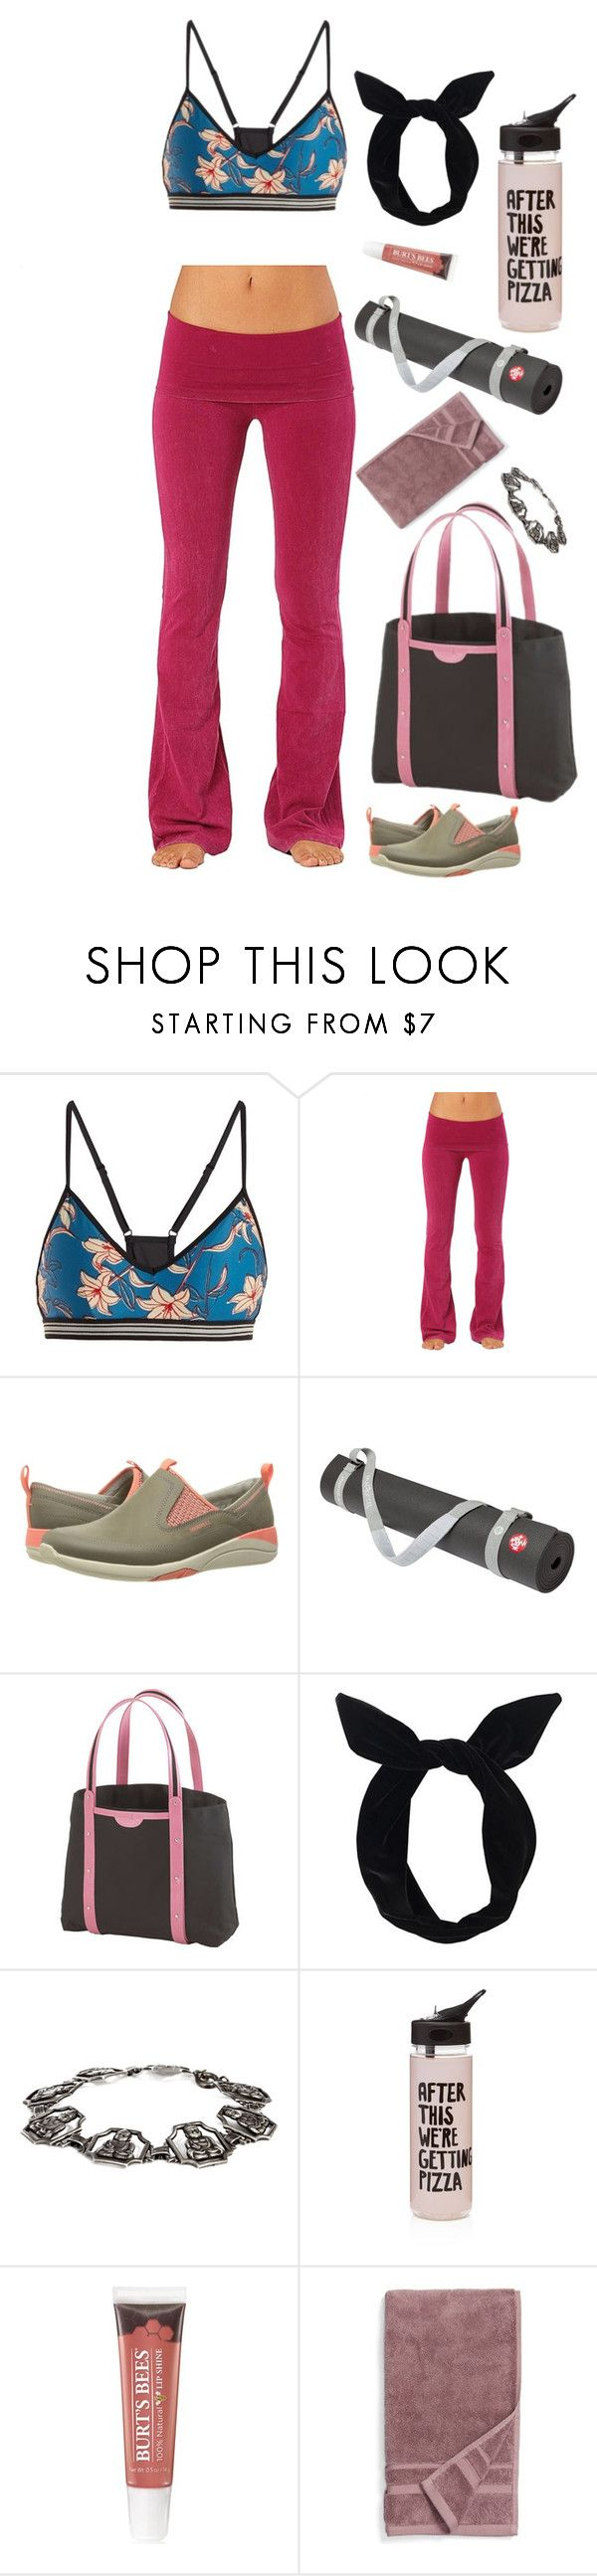 """""""Cheerful Chakras"""" by rebeccalange ❤ liked on Polyvore featuring The Upside, Electric Yoga, Merrell, Manduka, Crescent Moon Yoga, Lulu in the Sky, ban.do, Burt's Bees and Waterworks"""